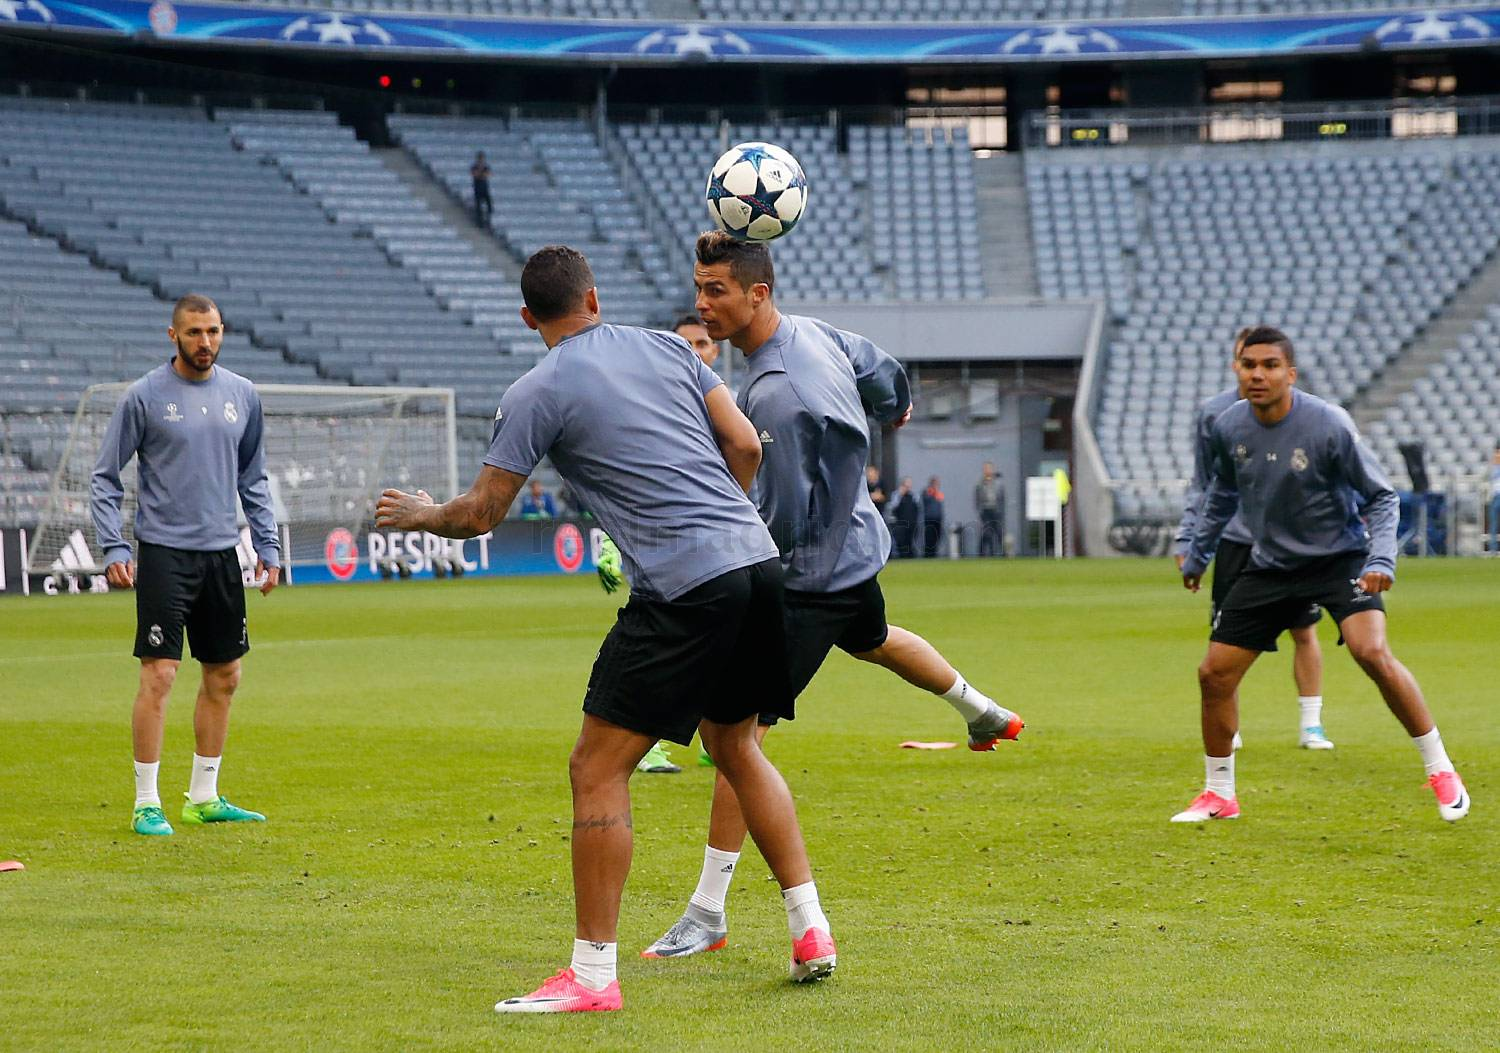 Real Madrid - Entrenamiento del Real Madrid - 11-04-2017